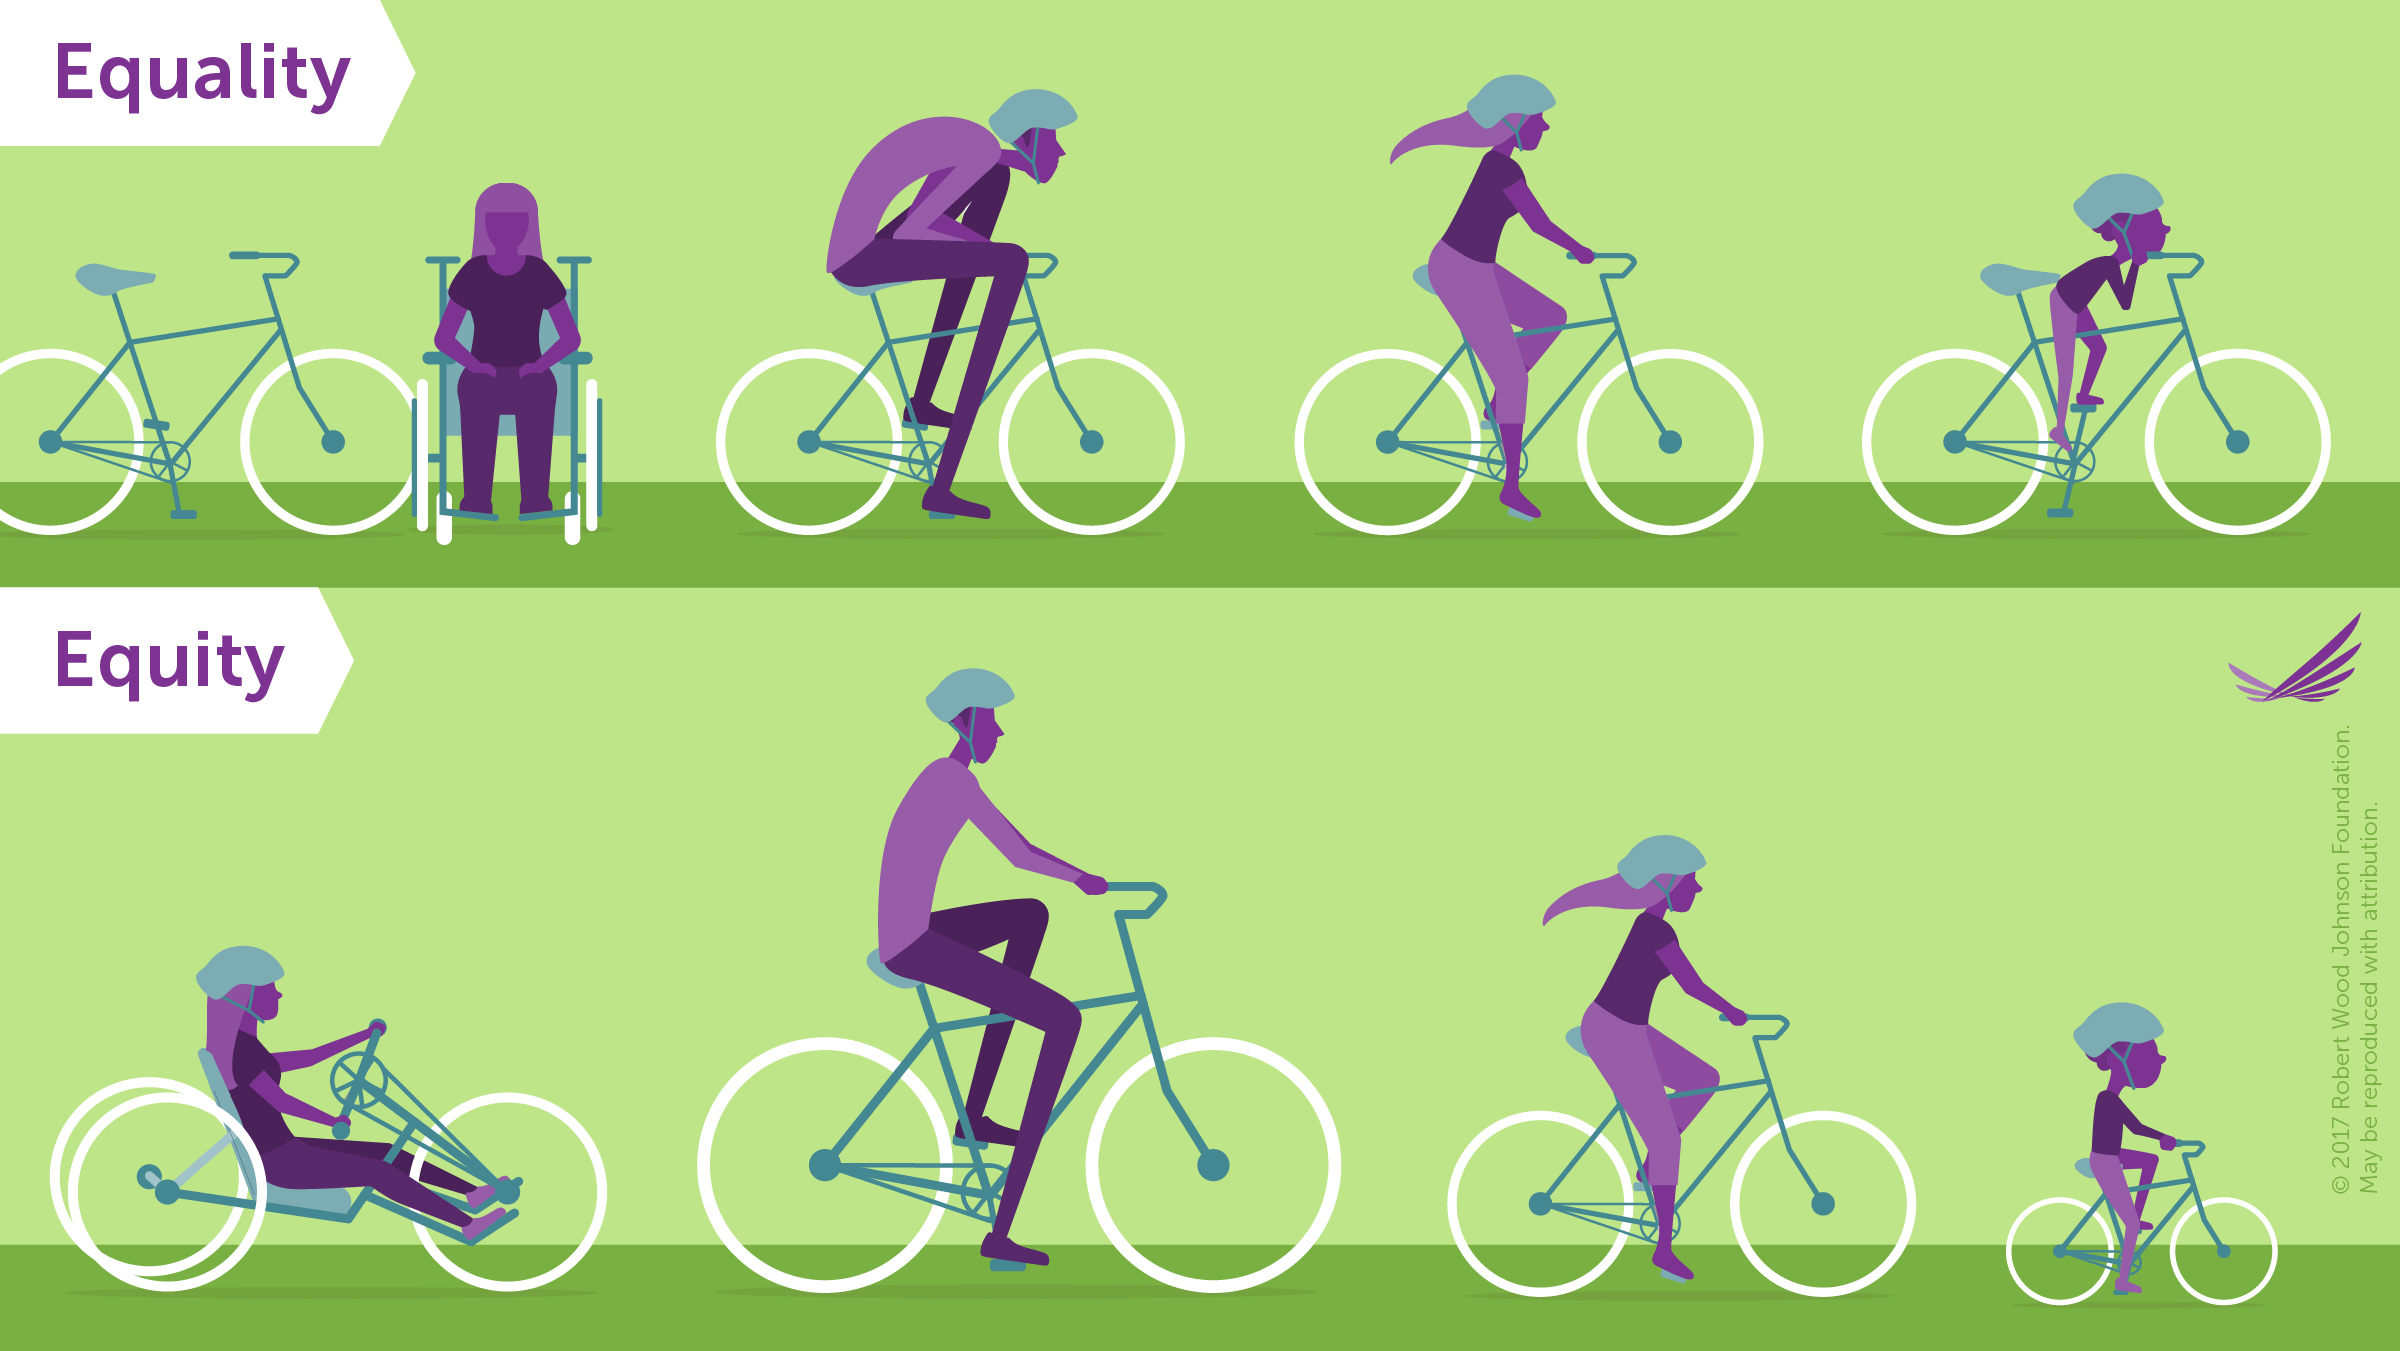 Equality versus Equity image showing people on bicycles